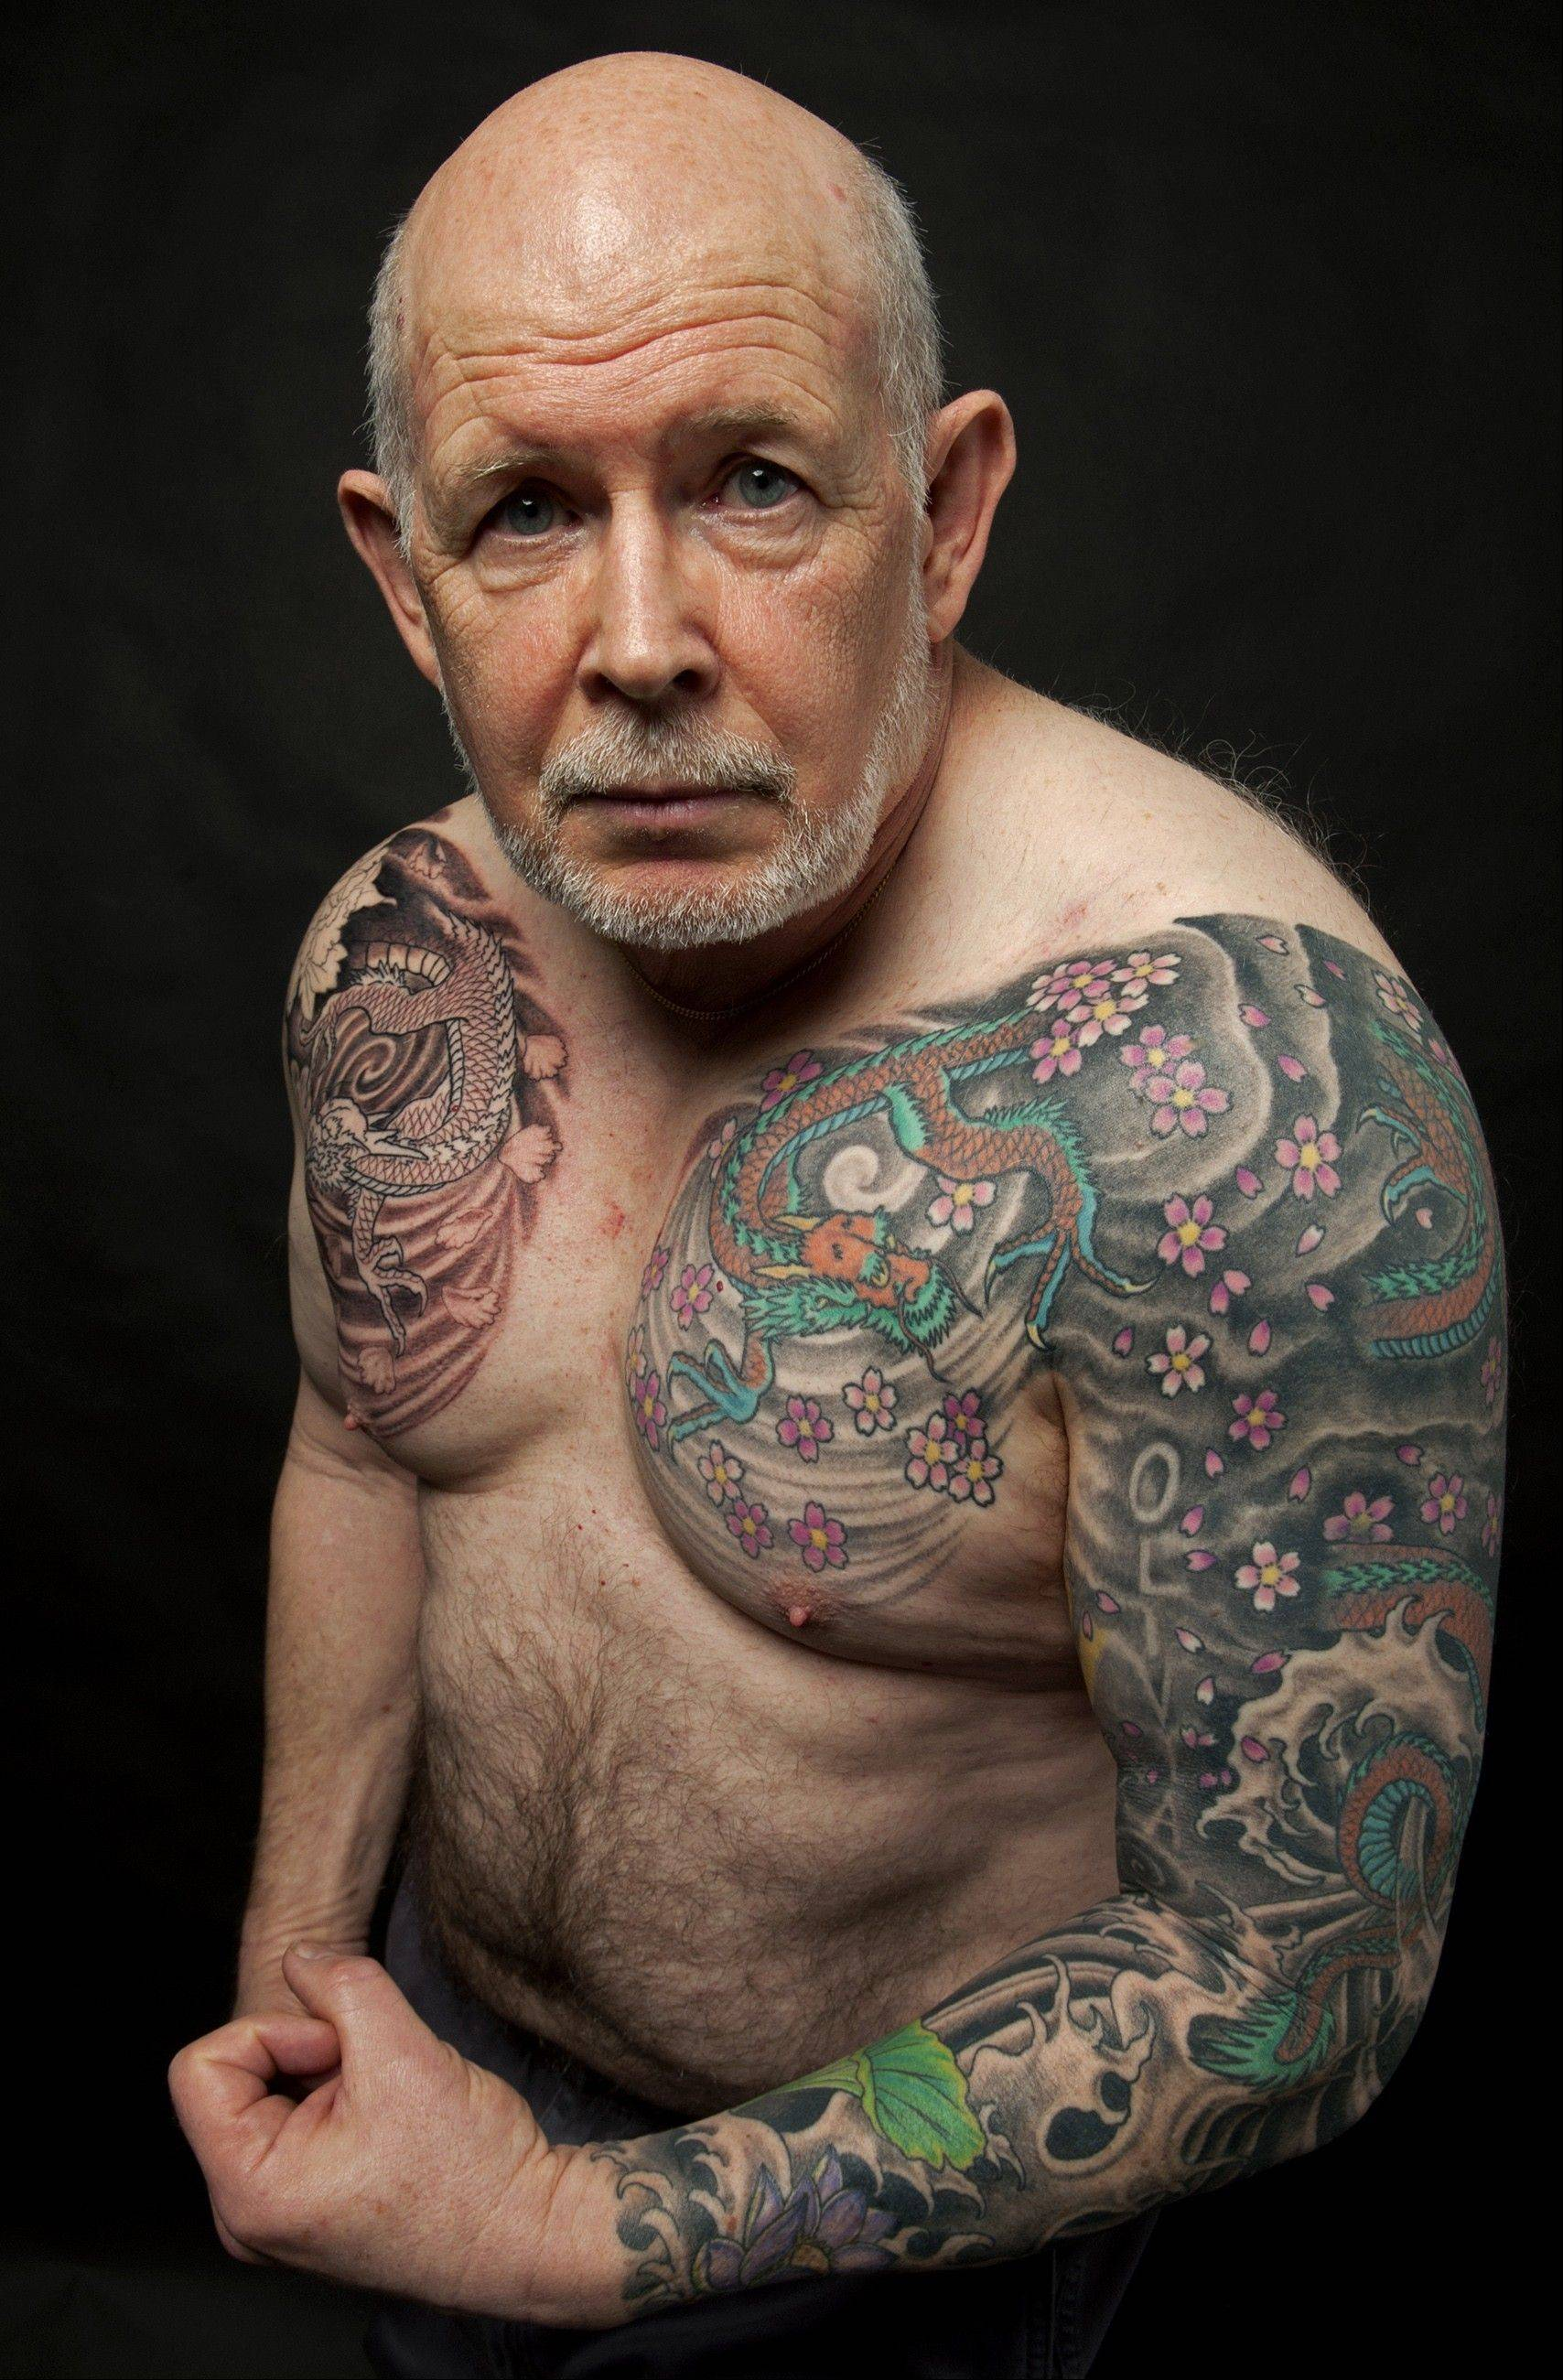 Dave Forties started getting tattoos after he retired from the Army in 1998. Some of his tattoos were inspired by his collection of Japanese porcelain.